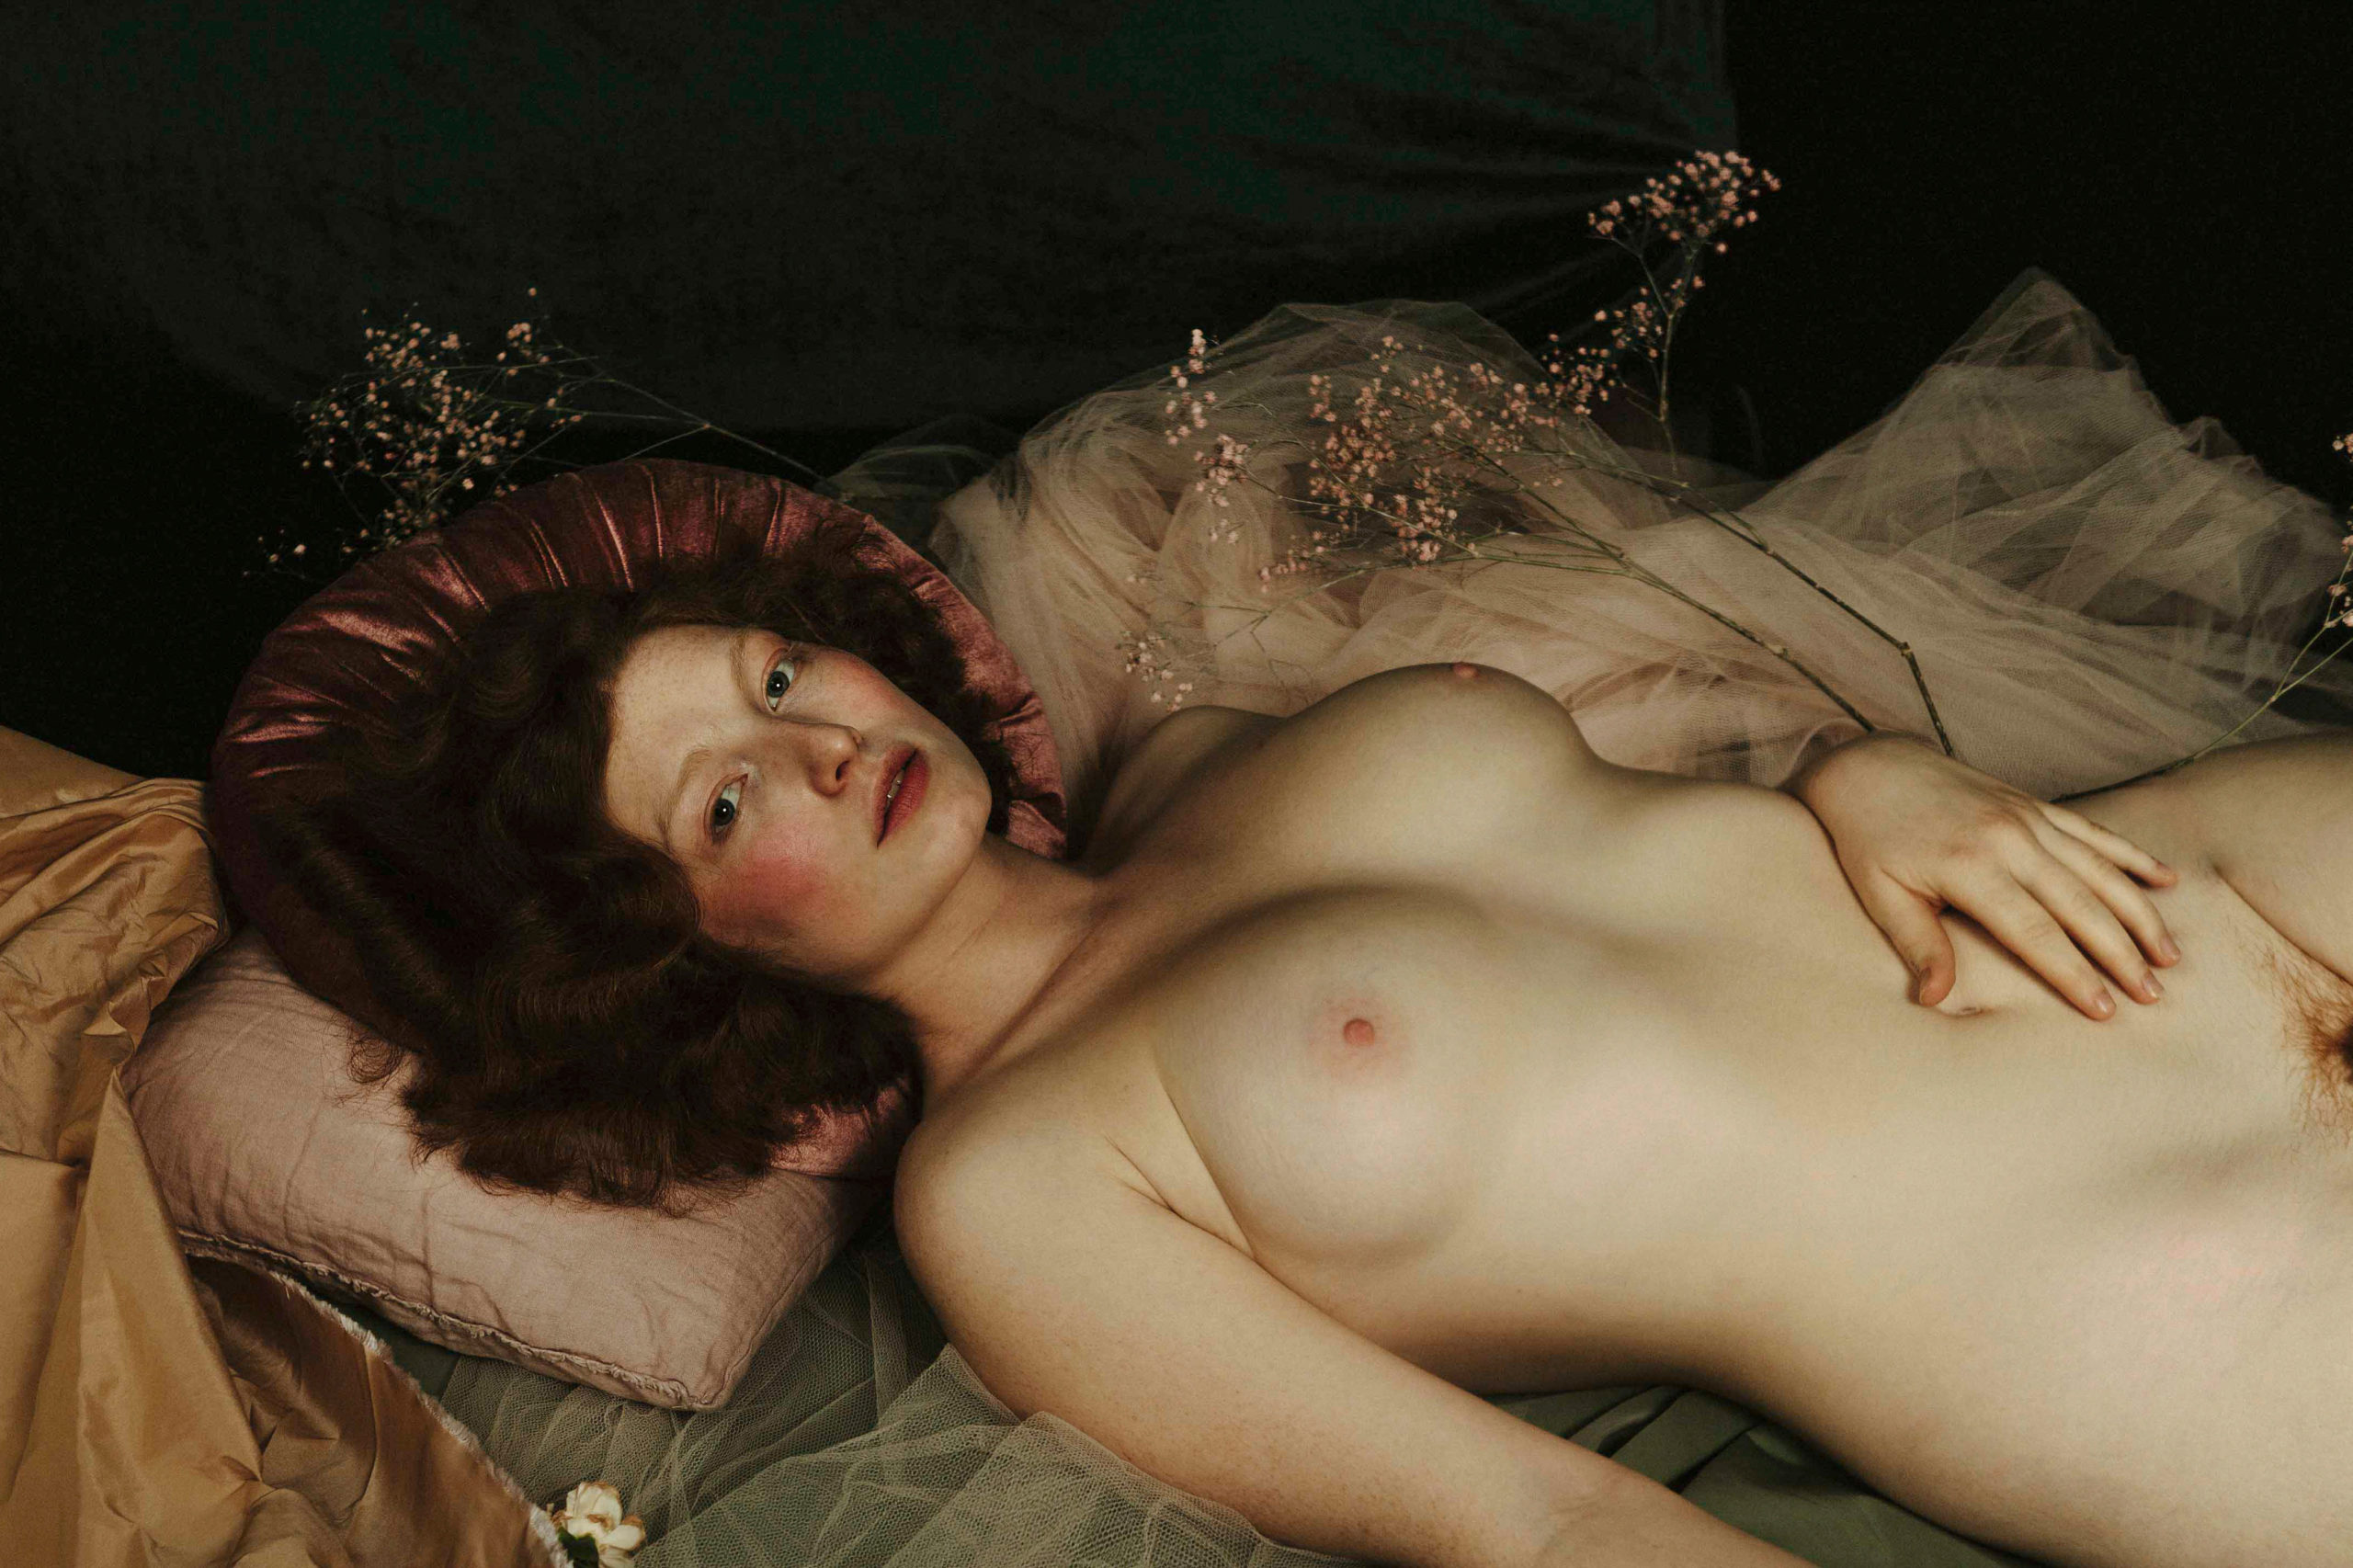 Painterly portrait of a naked woman with red hair